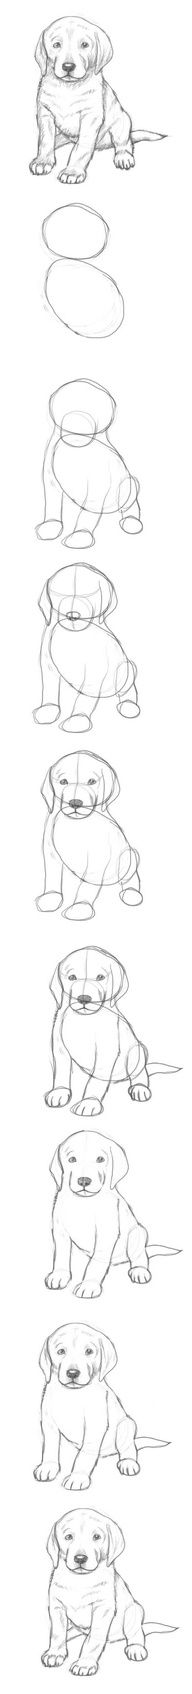 how to draw a puppy https://getpaidtodrawreview2015.wordpress.com/2015/07/24/get-paid-to-draw-review/ https://getpaidtodrawreview2015.wordpress.com/2015/07/24/get-paid-to-draw-review/